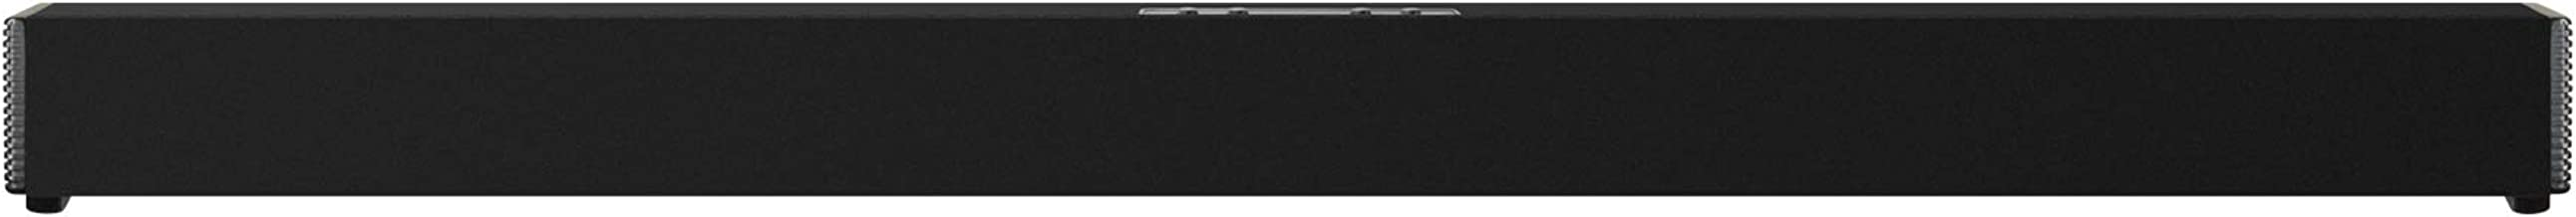 iLive Wall Mountable Sound Bar with Bluetooth, 37 Inches, Black (ITB259B)